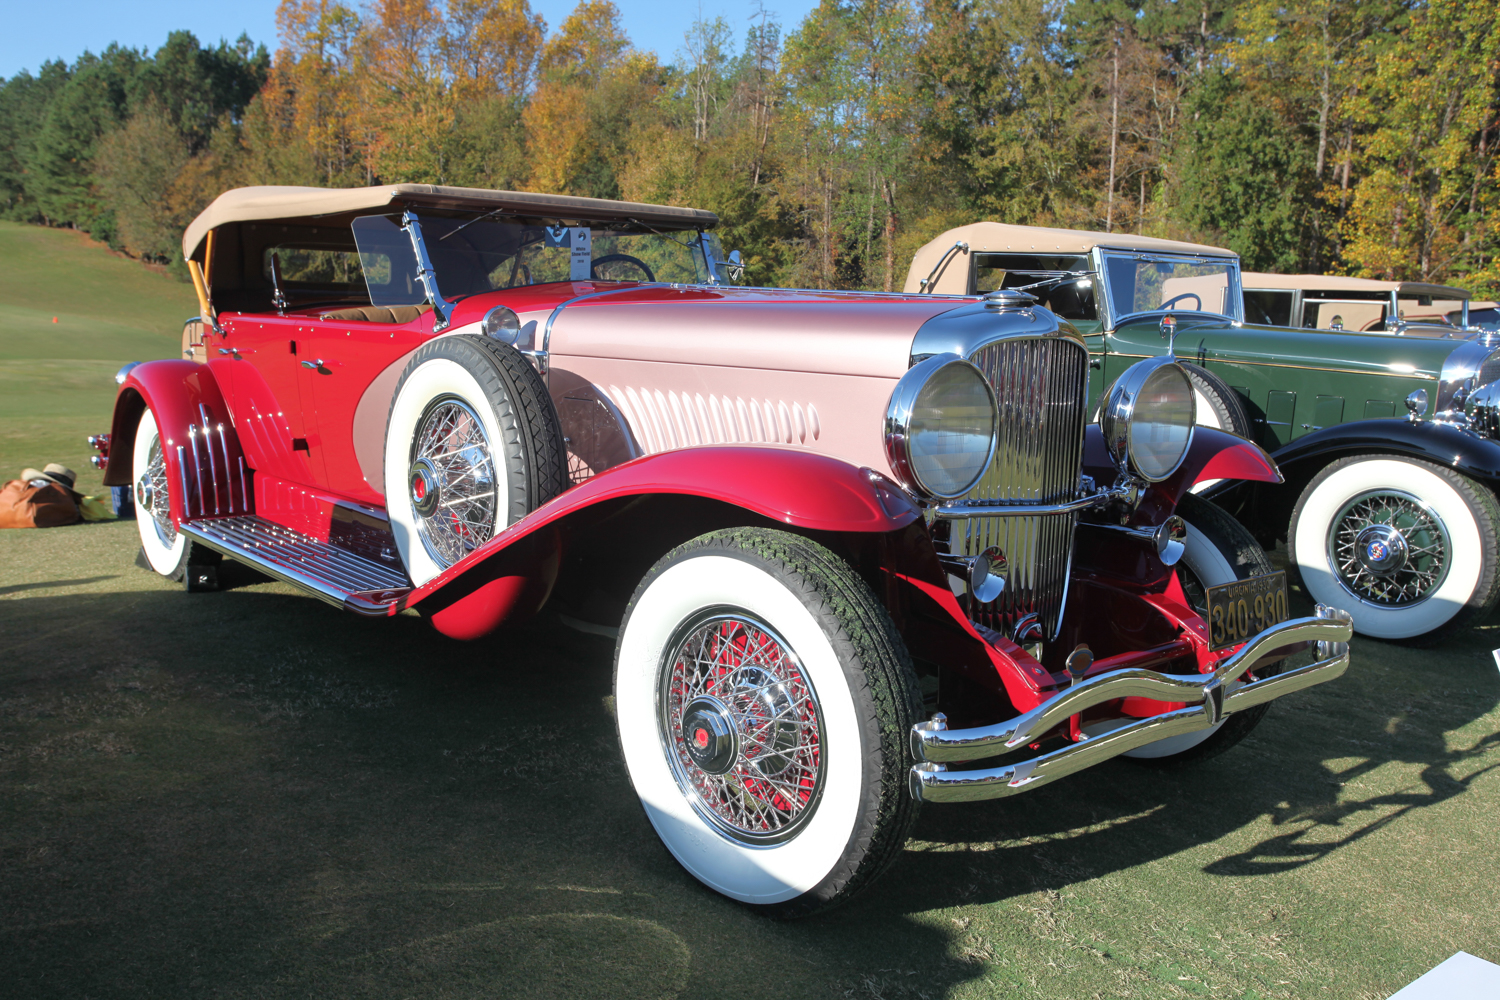 Interesting color combination on this 1930 Duesenberg LeGrande-bodied Dual Cowl Phaeton, but it works.